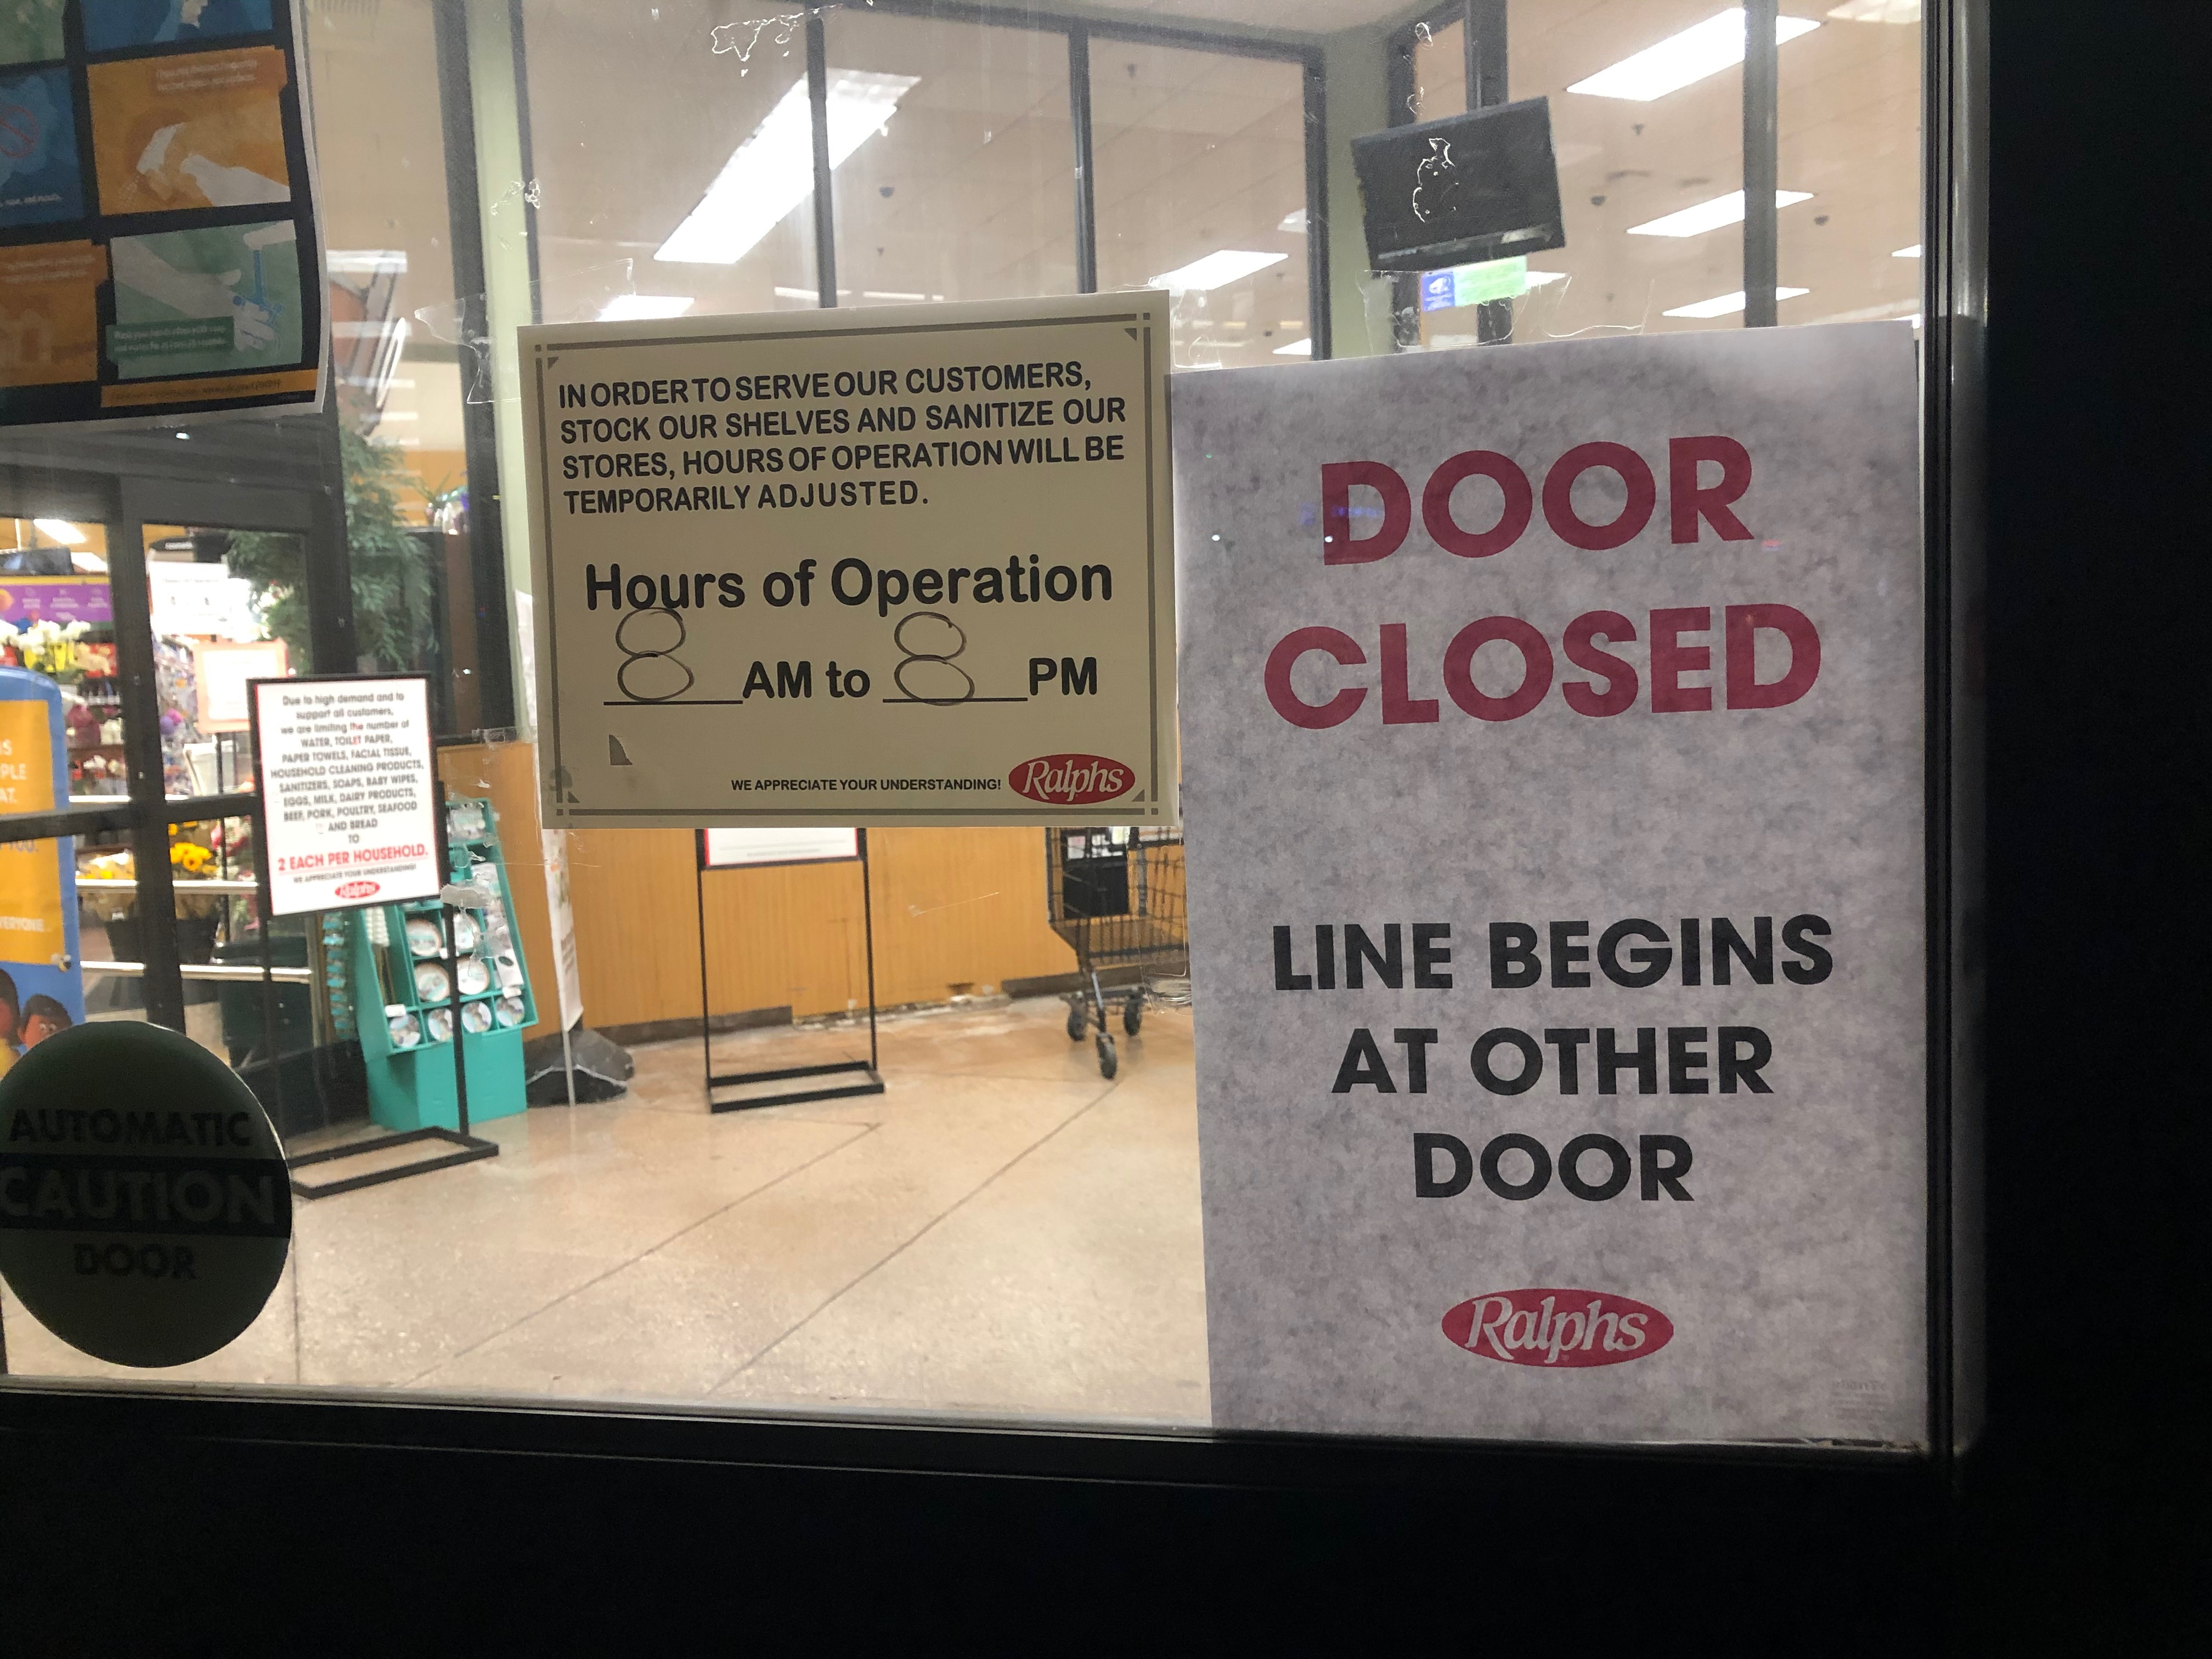 Ralphs Hours of Operation sign, adjusted to 8 a.m. to 8 p.m. during COVID-19 pandemic | Karen Foshay